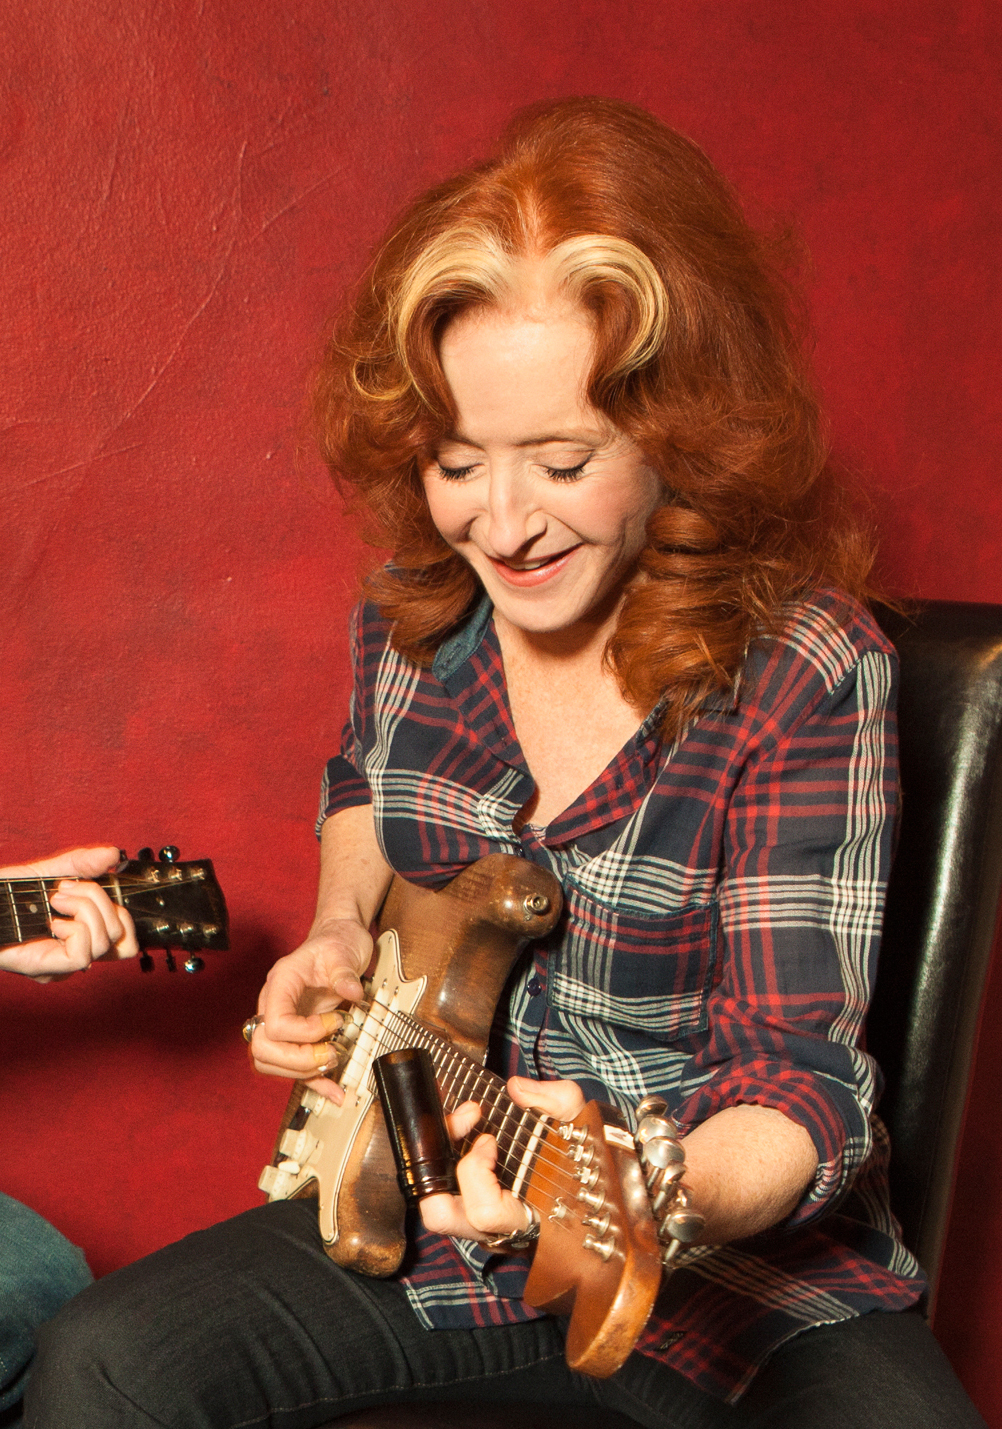 images-uploads-gallery-bonnieraitt-1.jpg